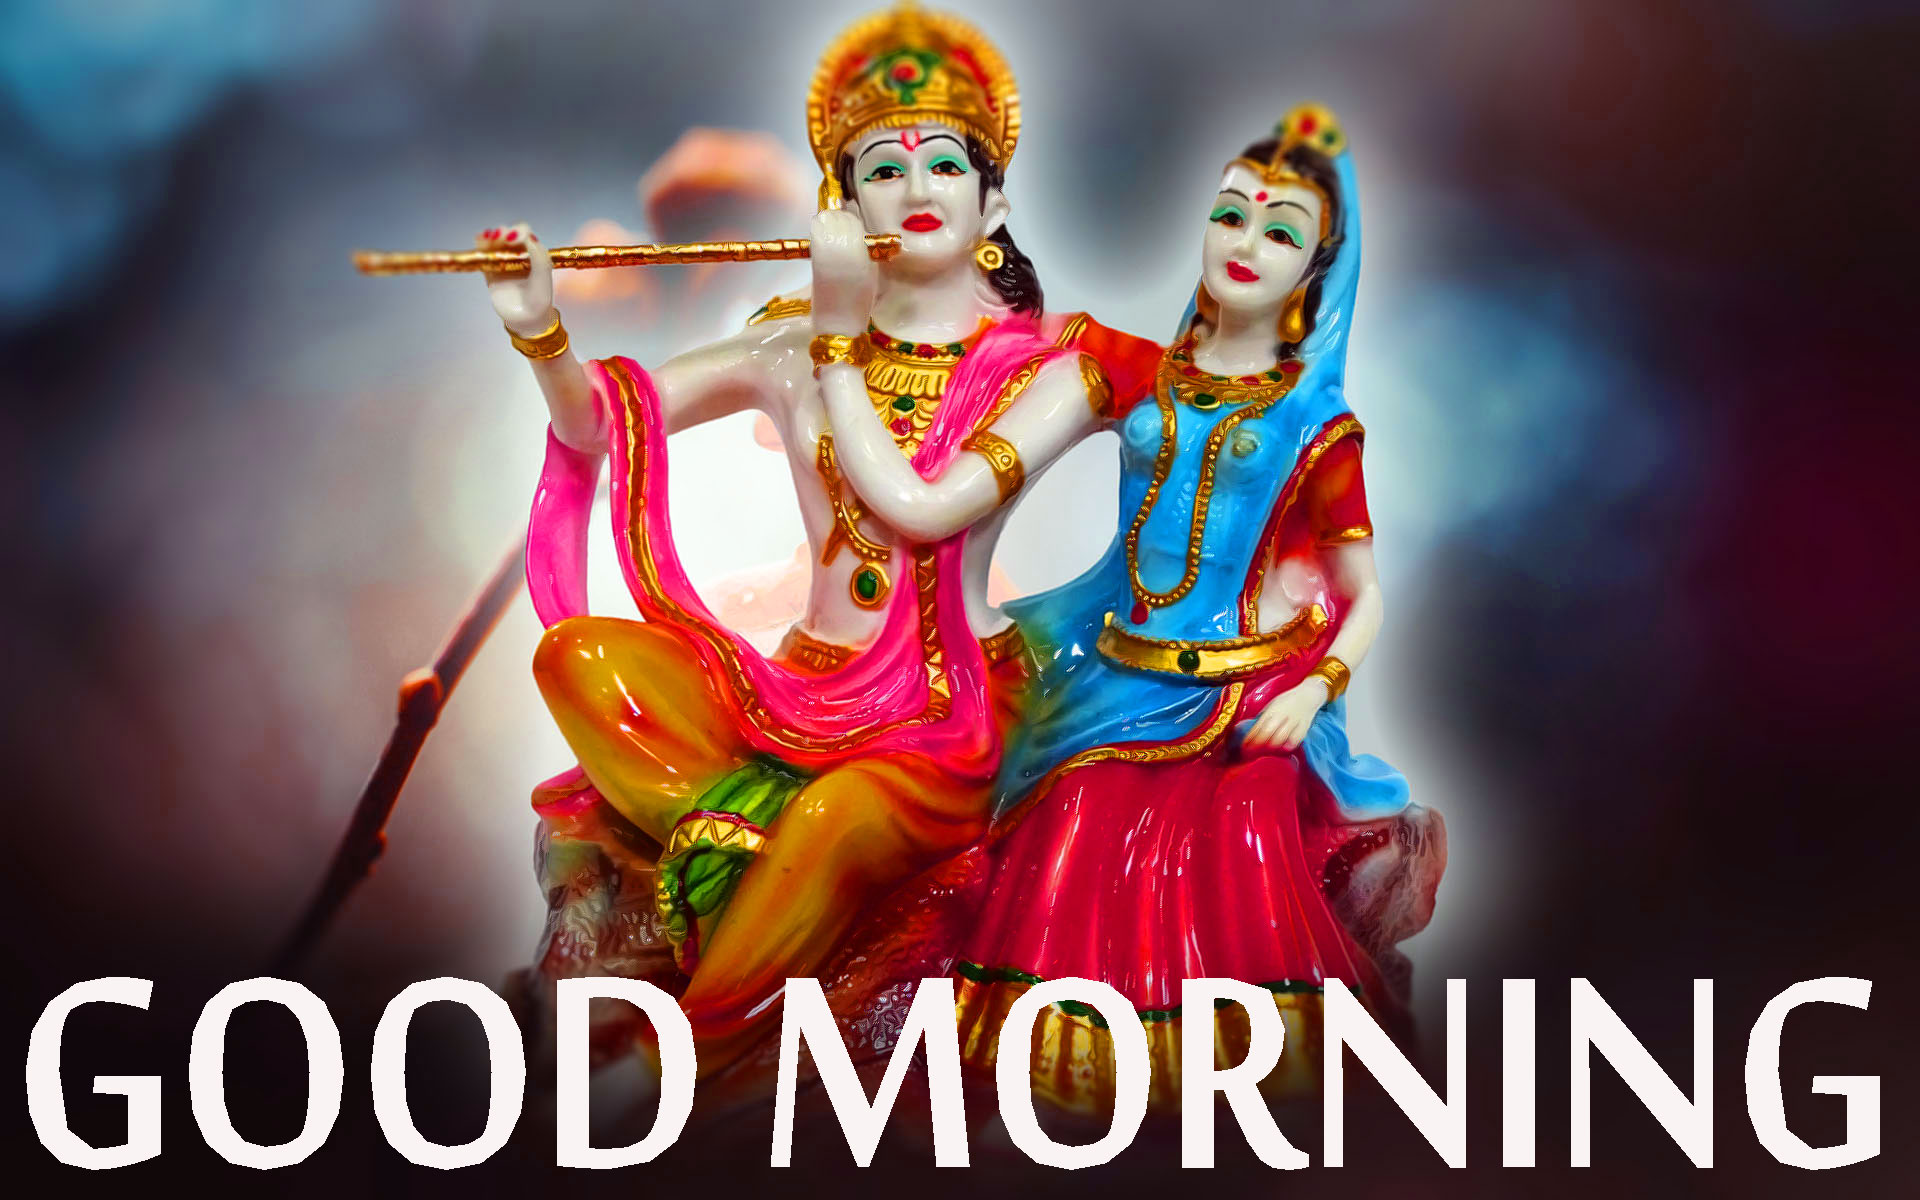 99+ Radha Krishna Good Morning Images Wallpaper Photo Pics HD Download -राधा कृष्णा गुड मॉर्निंग